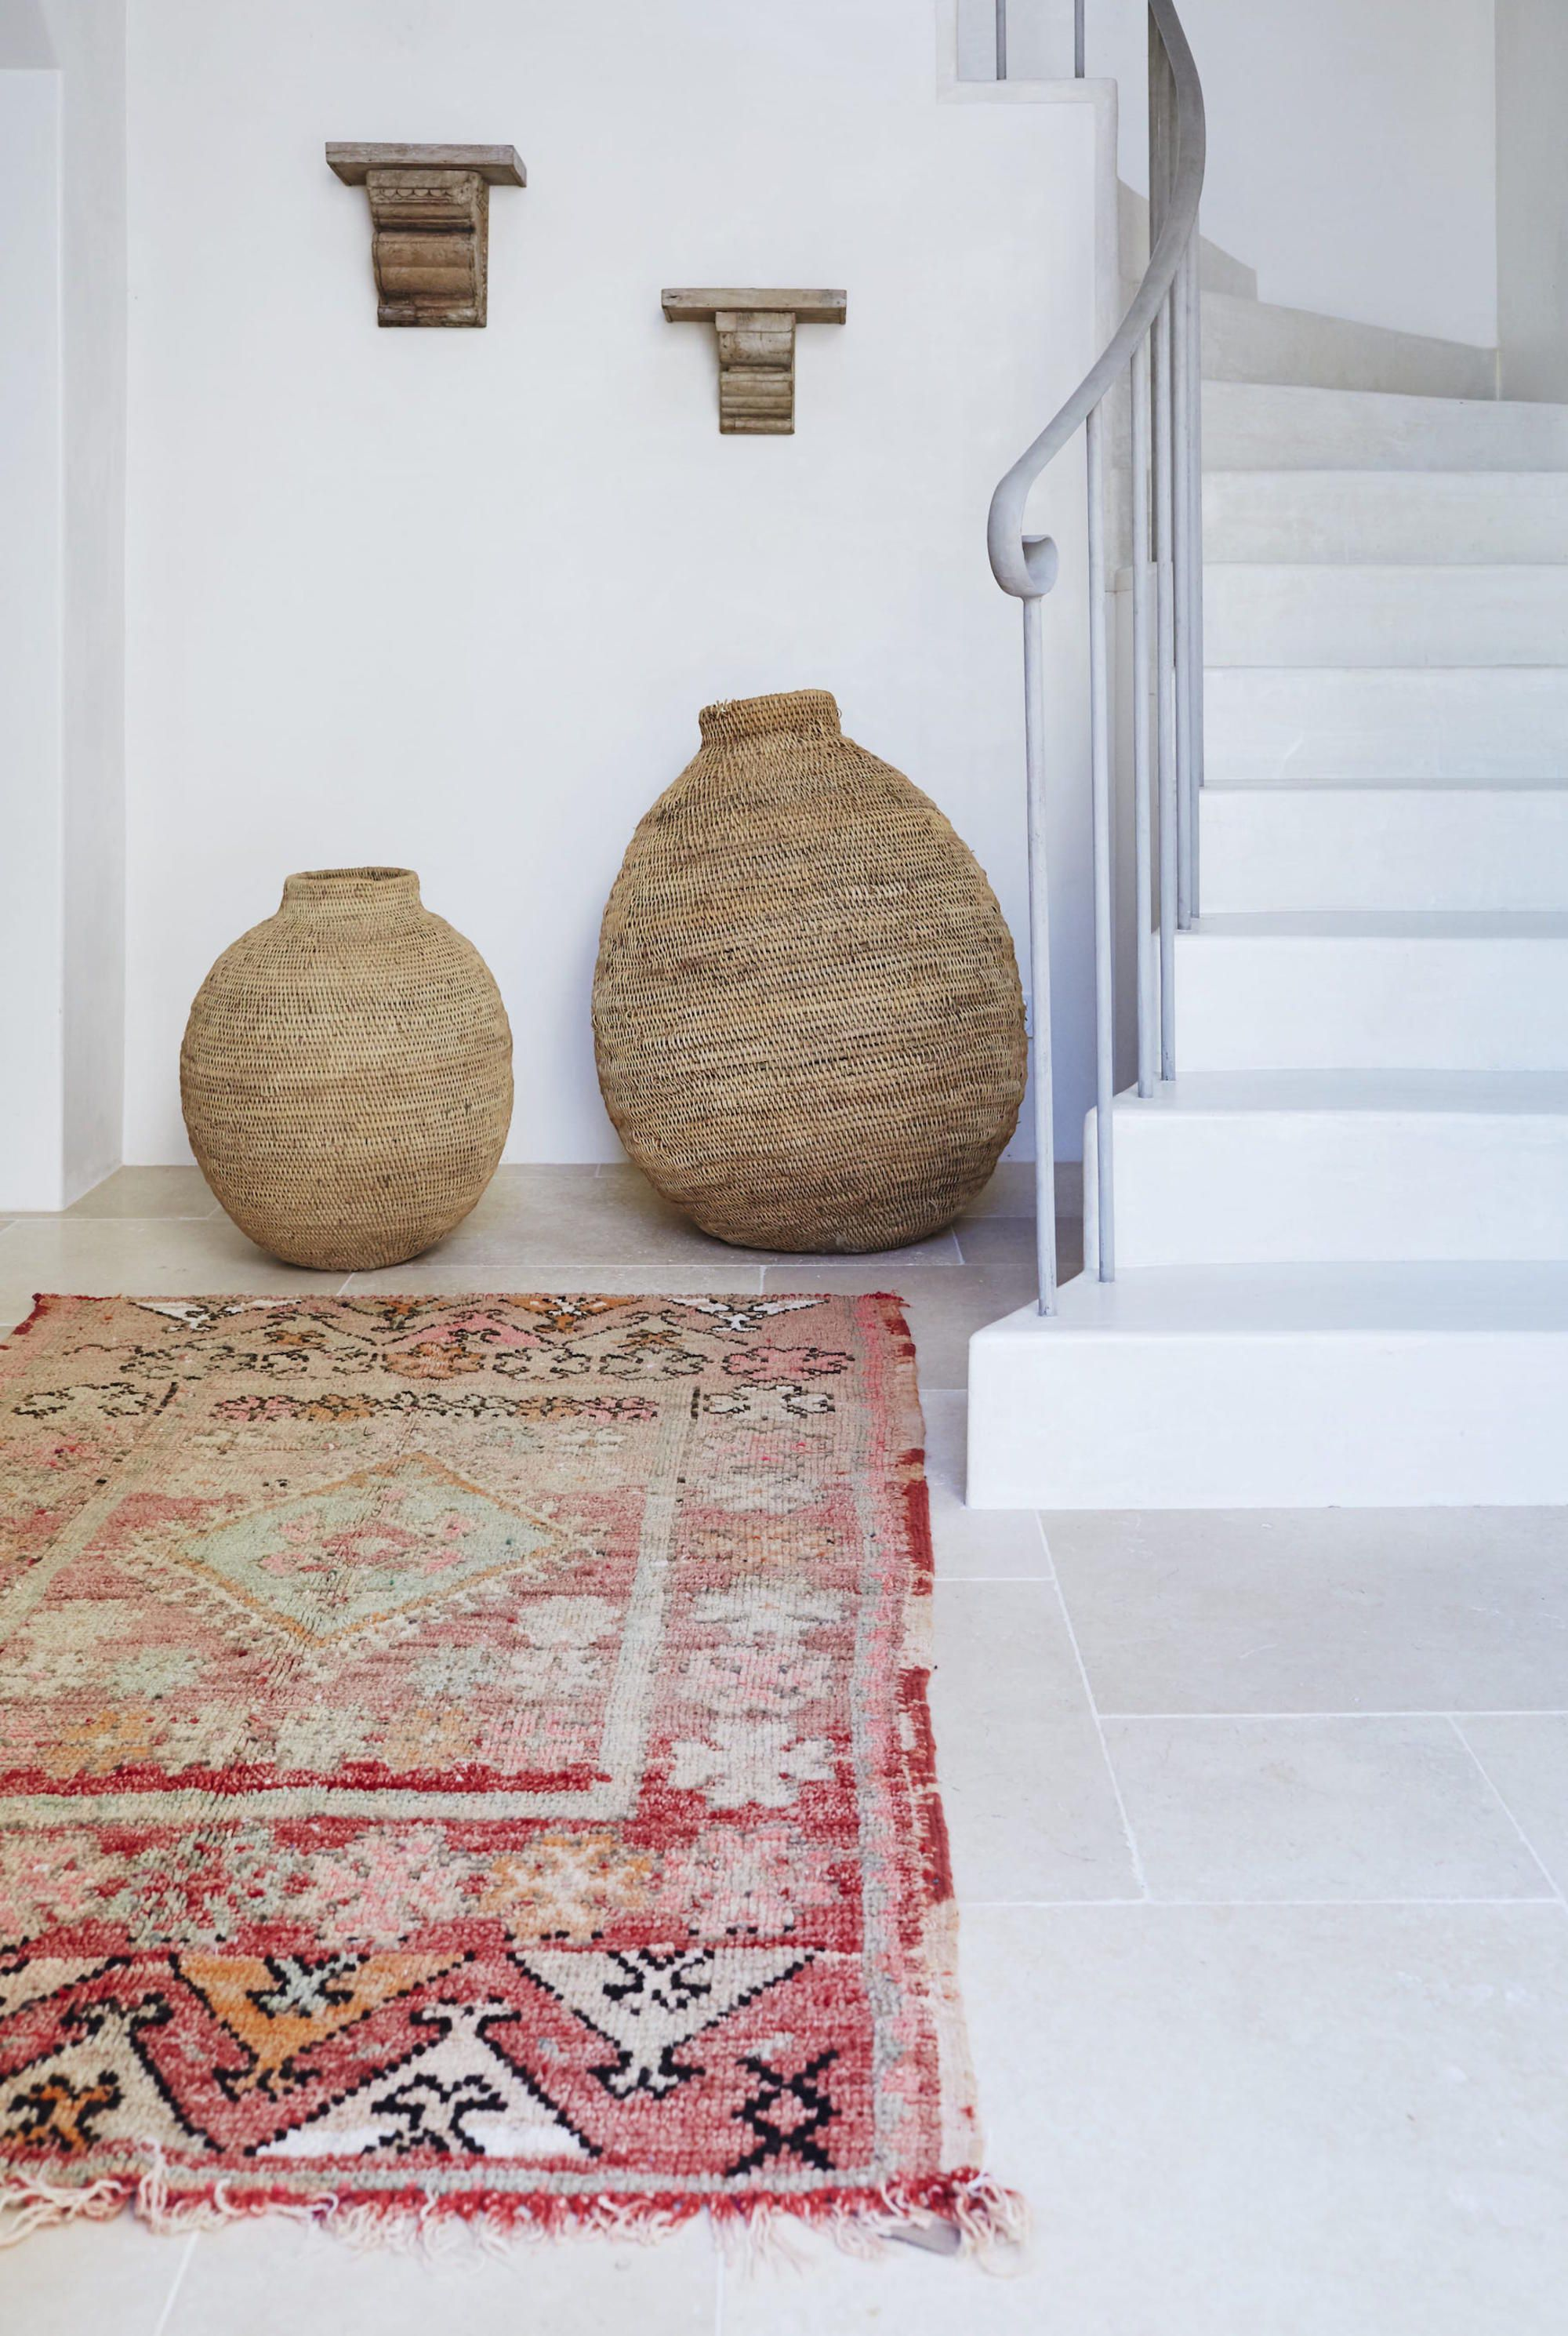 Moroccan Rugs Make An Inspired Entryway A Splash Of Colour In Otherwise Neutral E